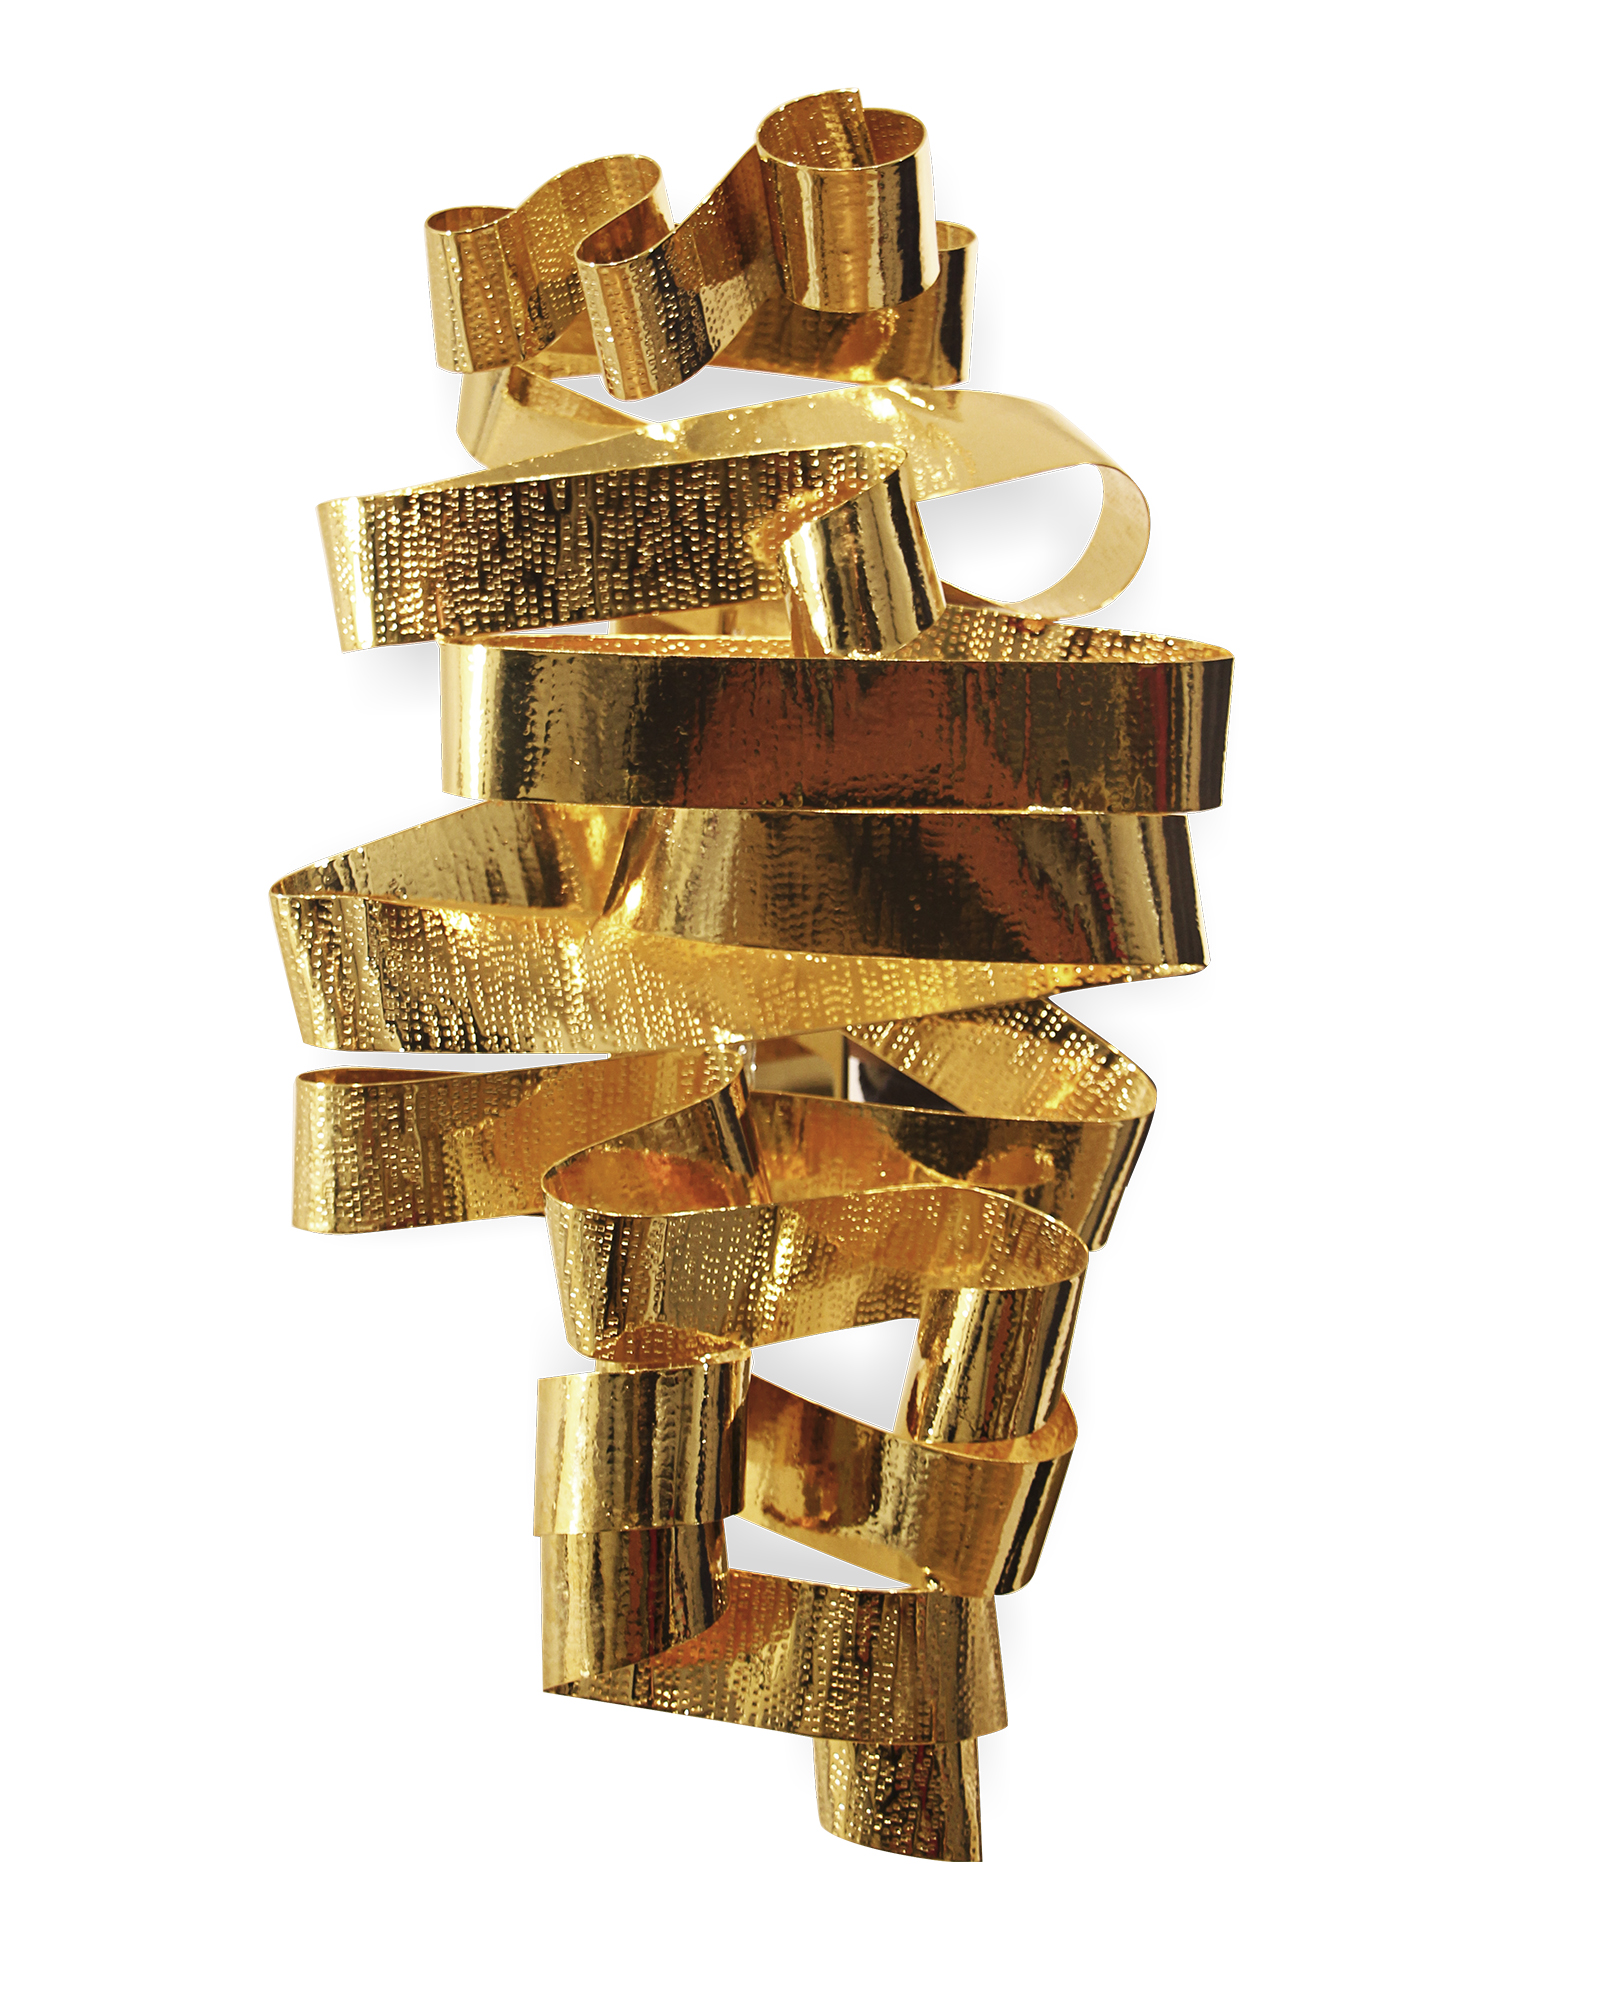 chloe-sconce-1 koket elegant sconces Elegant Sconces for your Living Room Design chloe sconce 1 koket